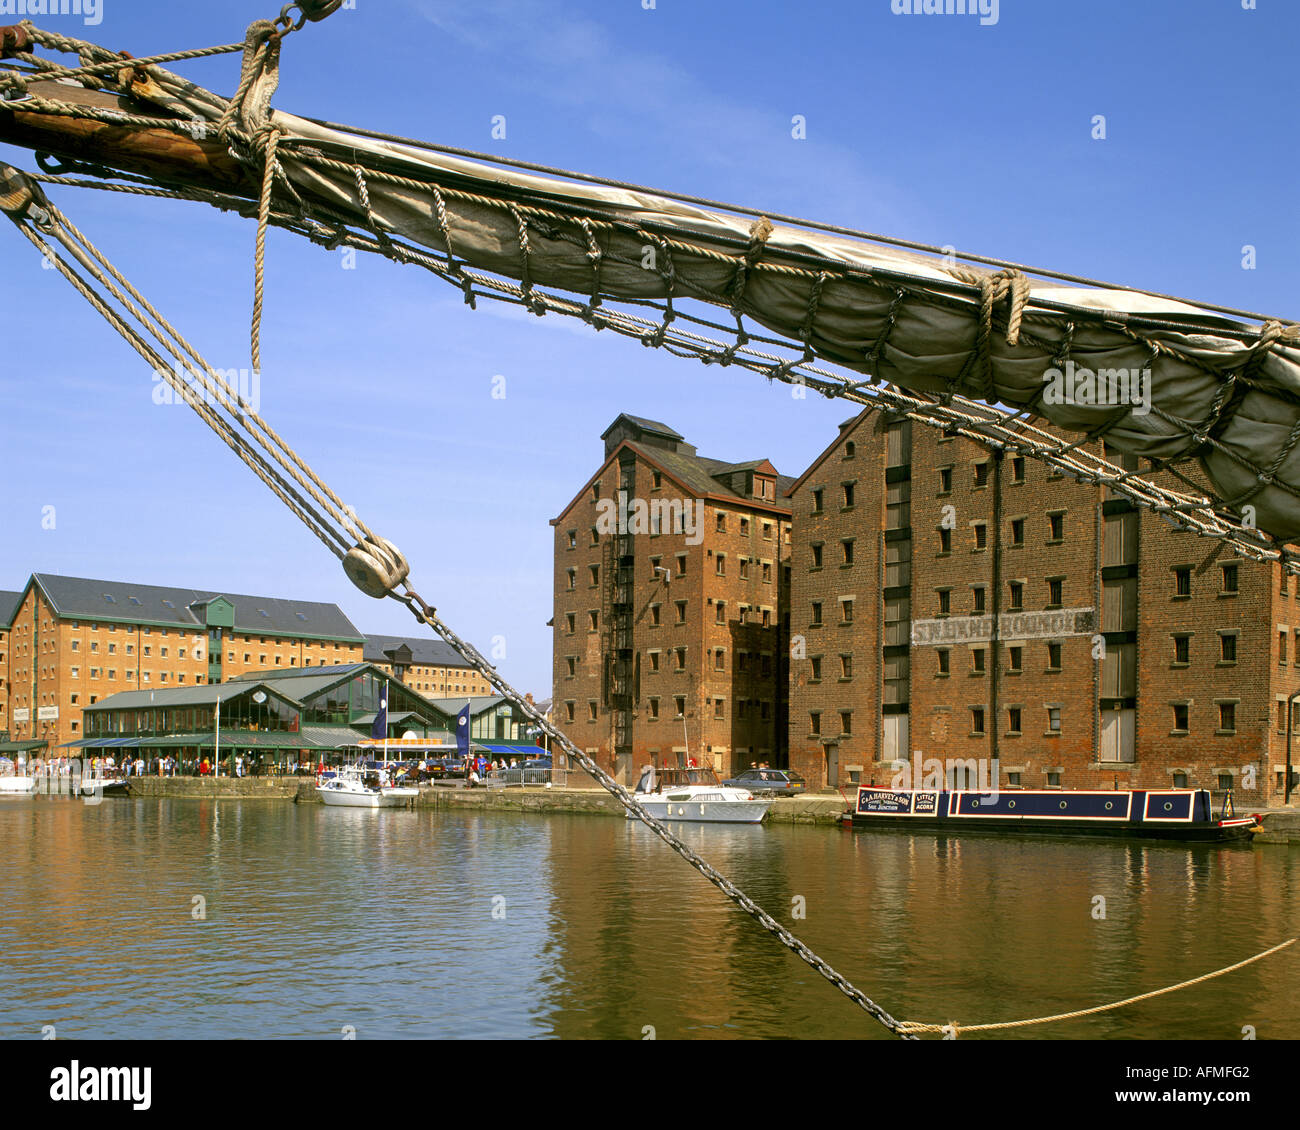 GB - GLOUCESTERSHIRE:  Historic Gloucester Docks - Stock Image